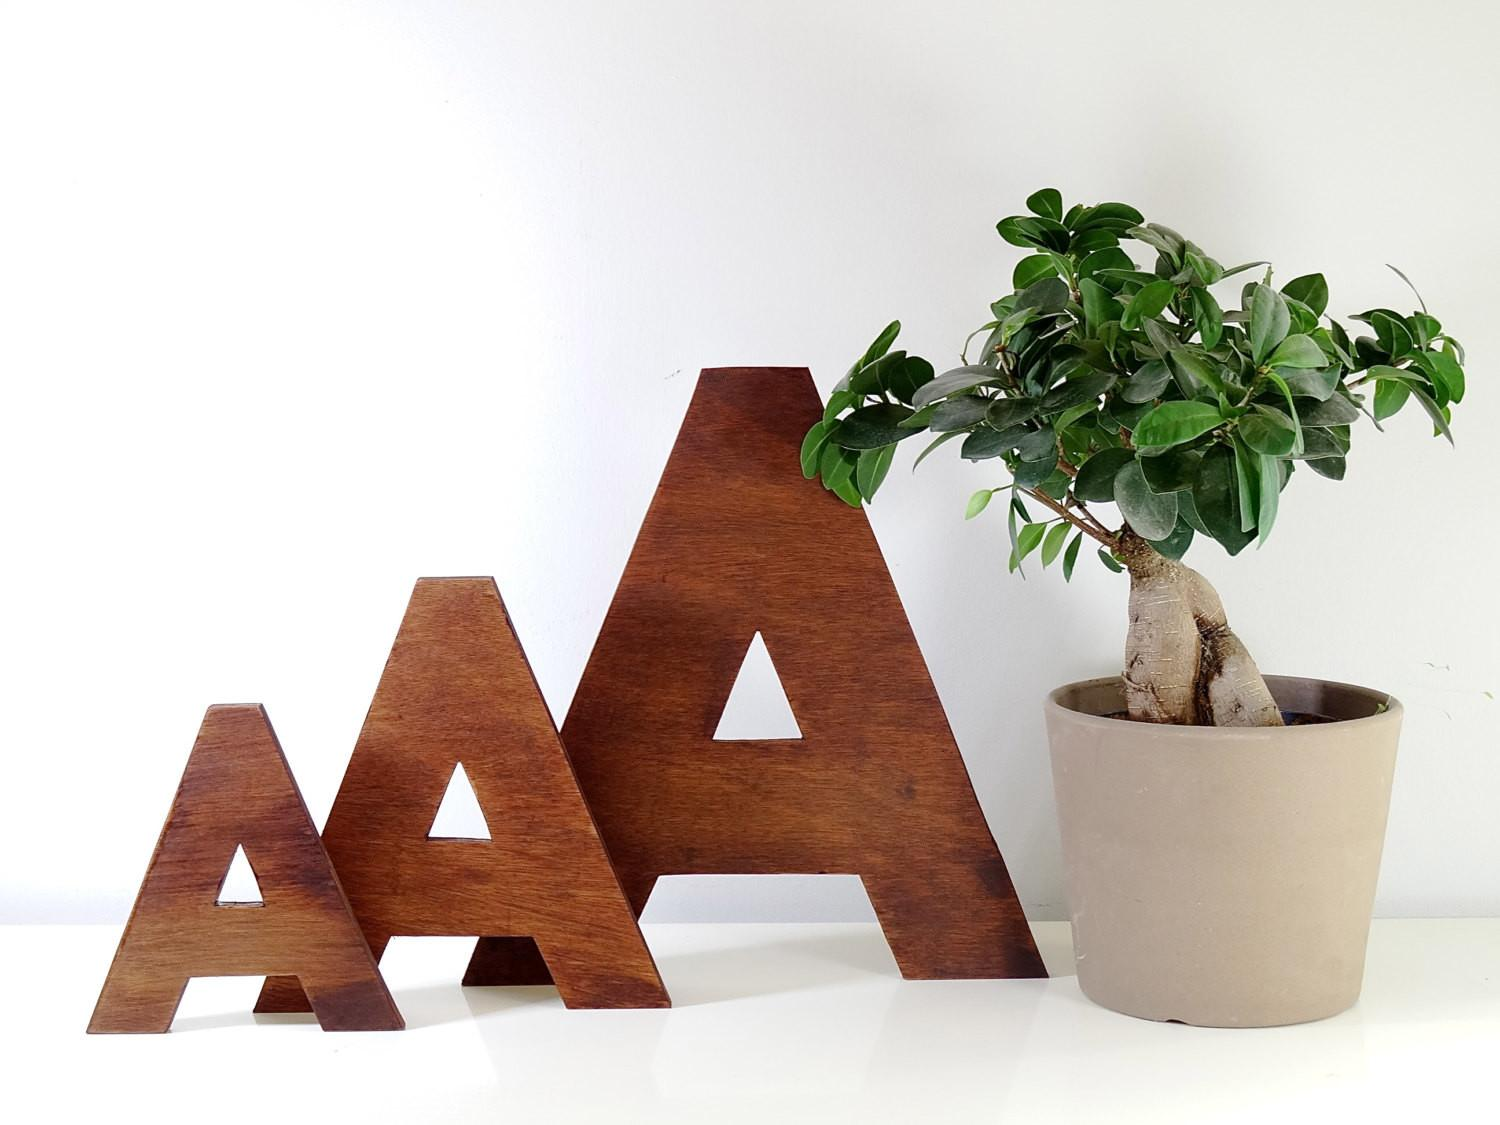 Wooden Letters Decorative Wall Decor